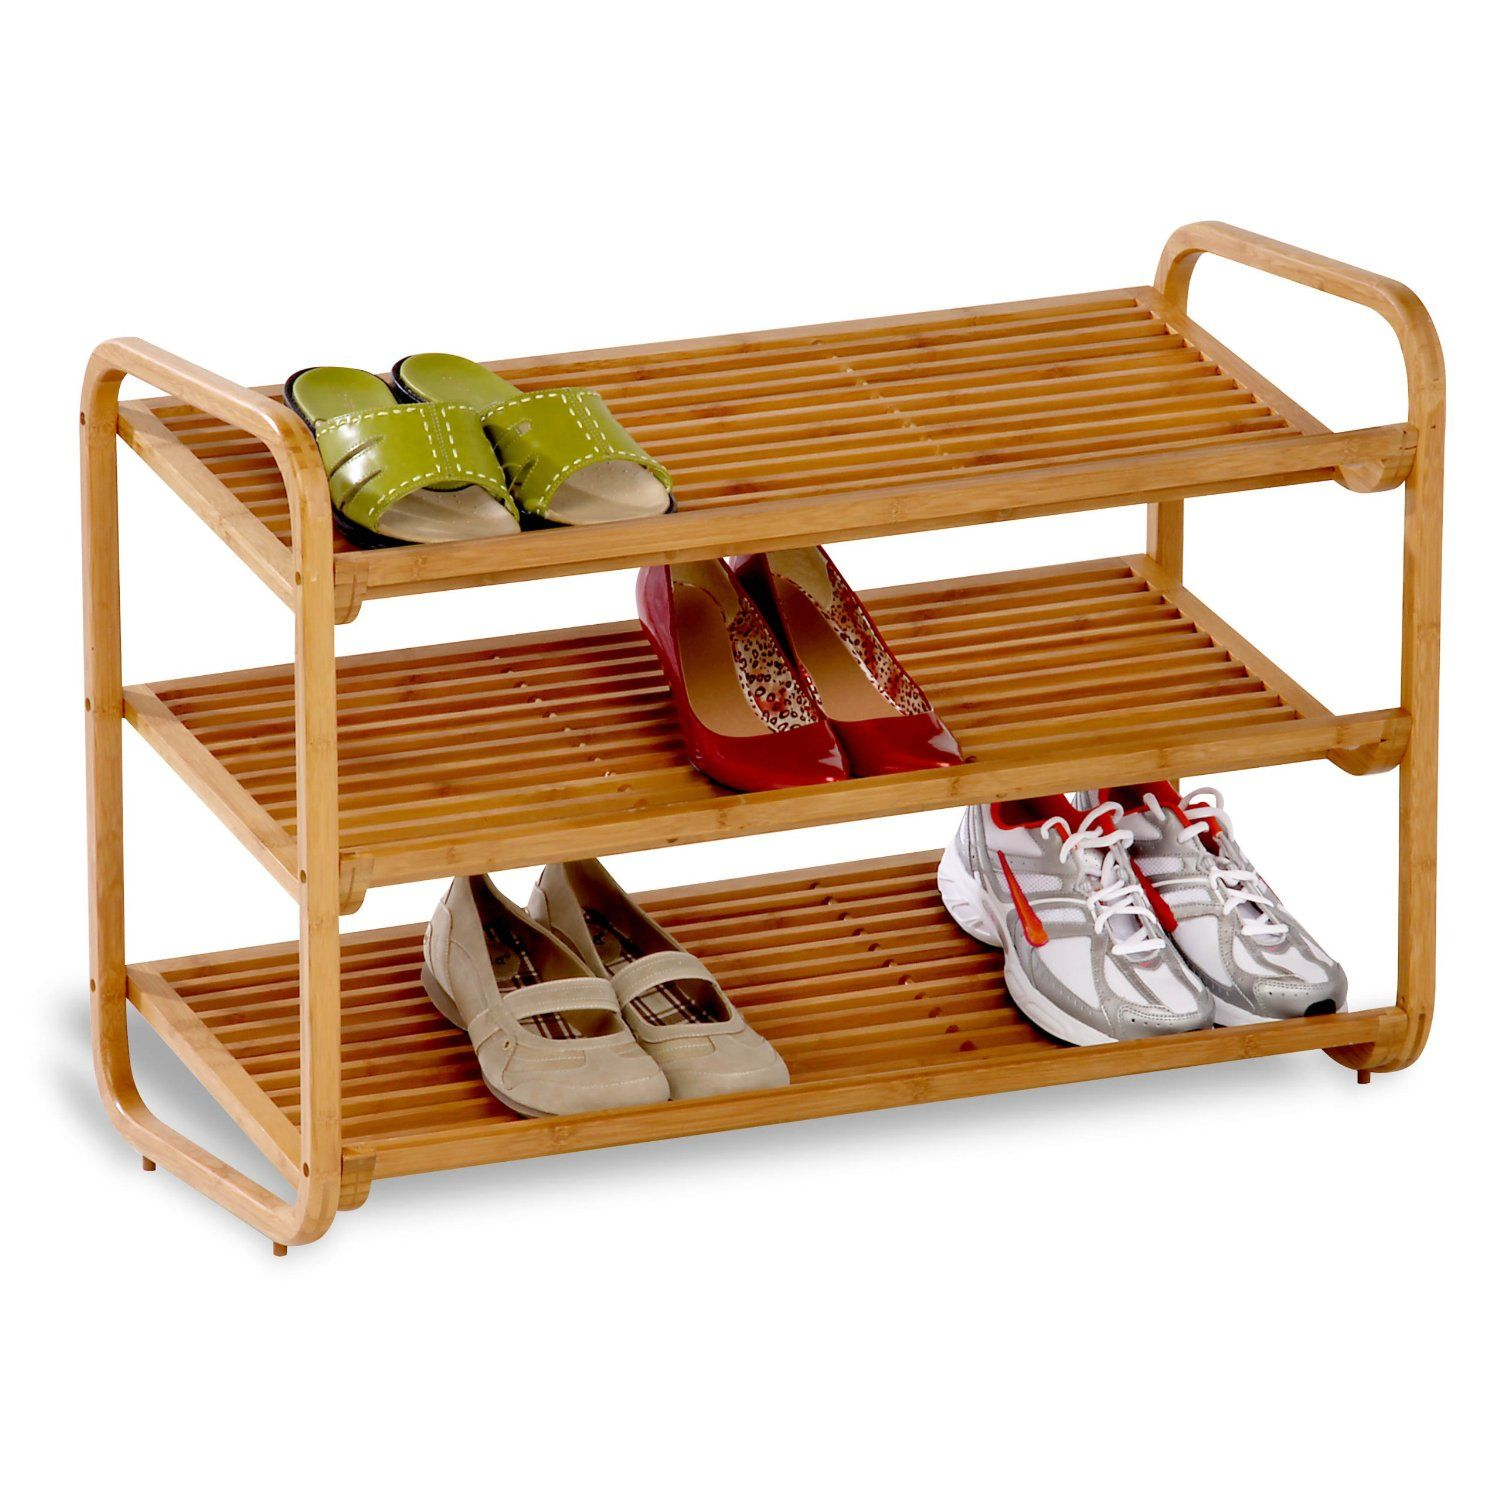 Have A Lot Of Shoes? Buy A Super Cool Bamboo Shoe Rack! #shoes